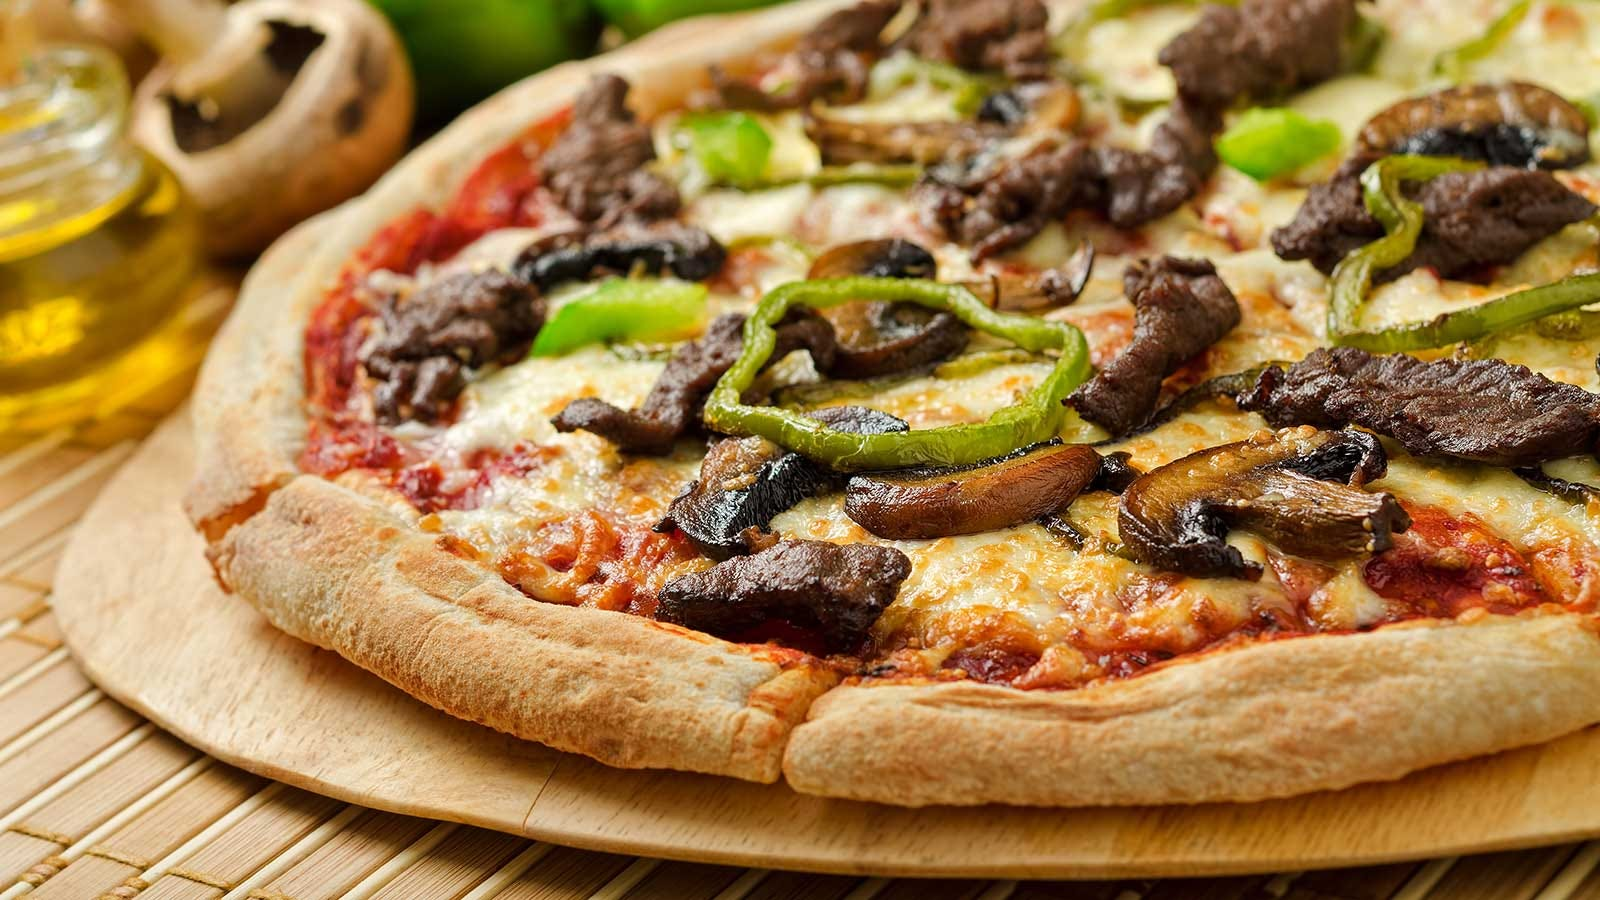 A pizza topped with chopped steak, green peppers, and mushrooms.